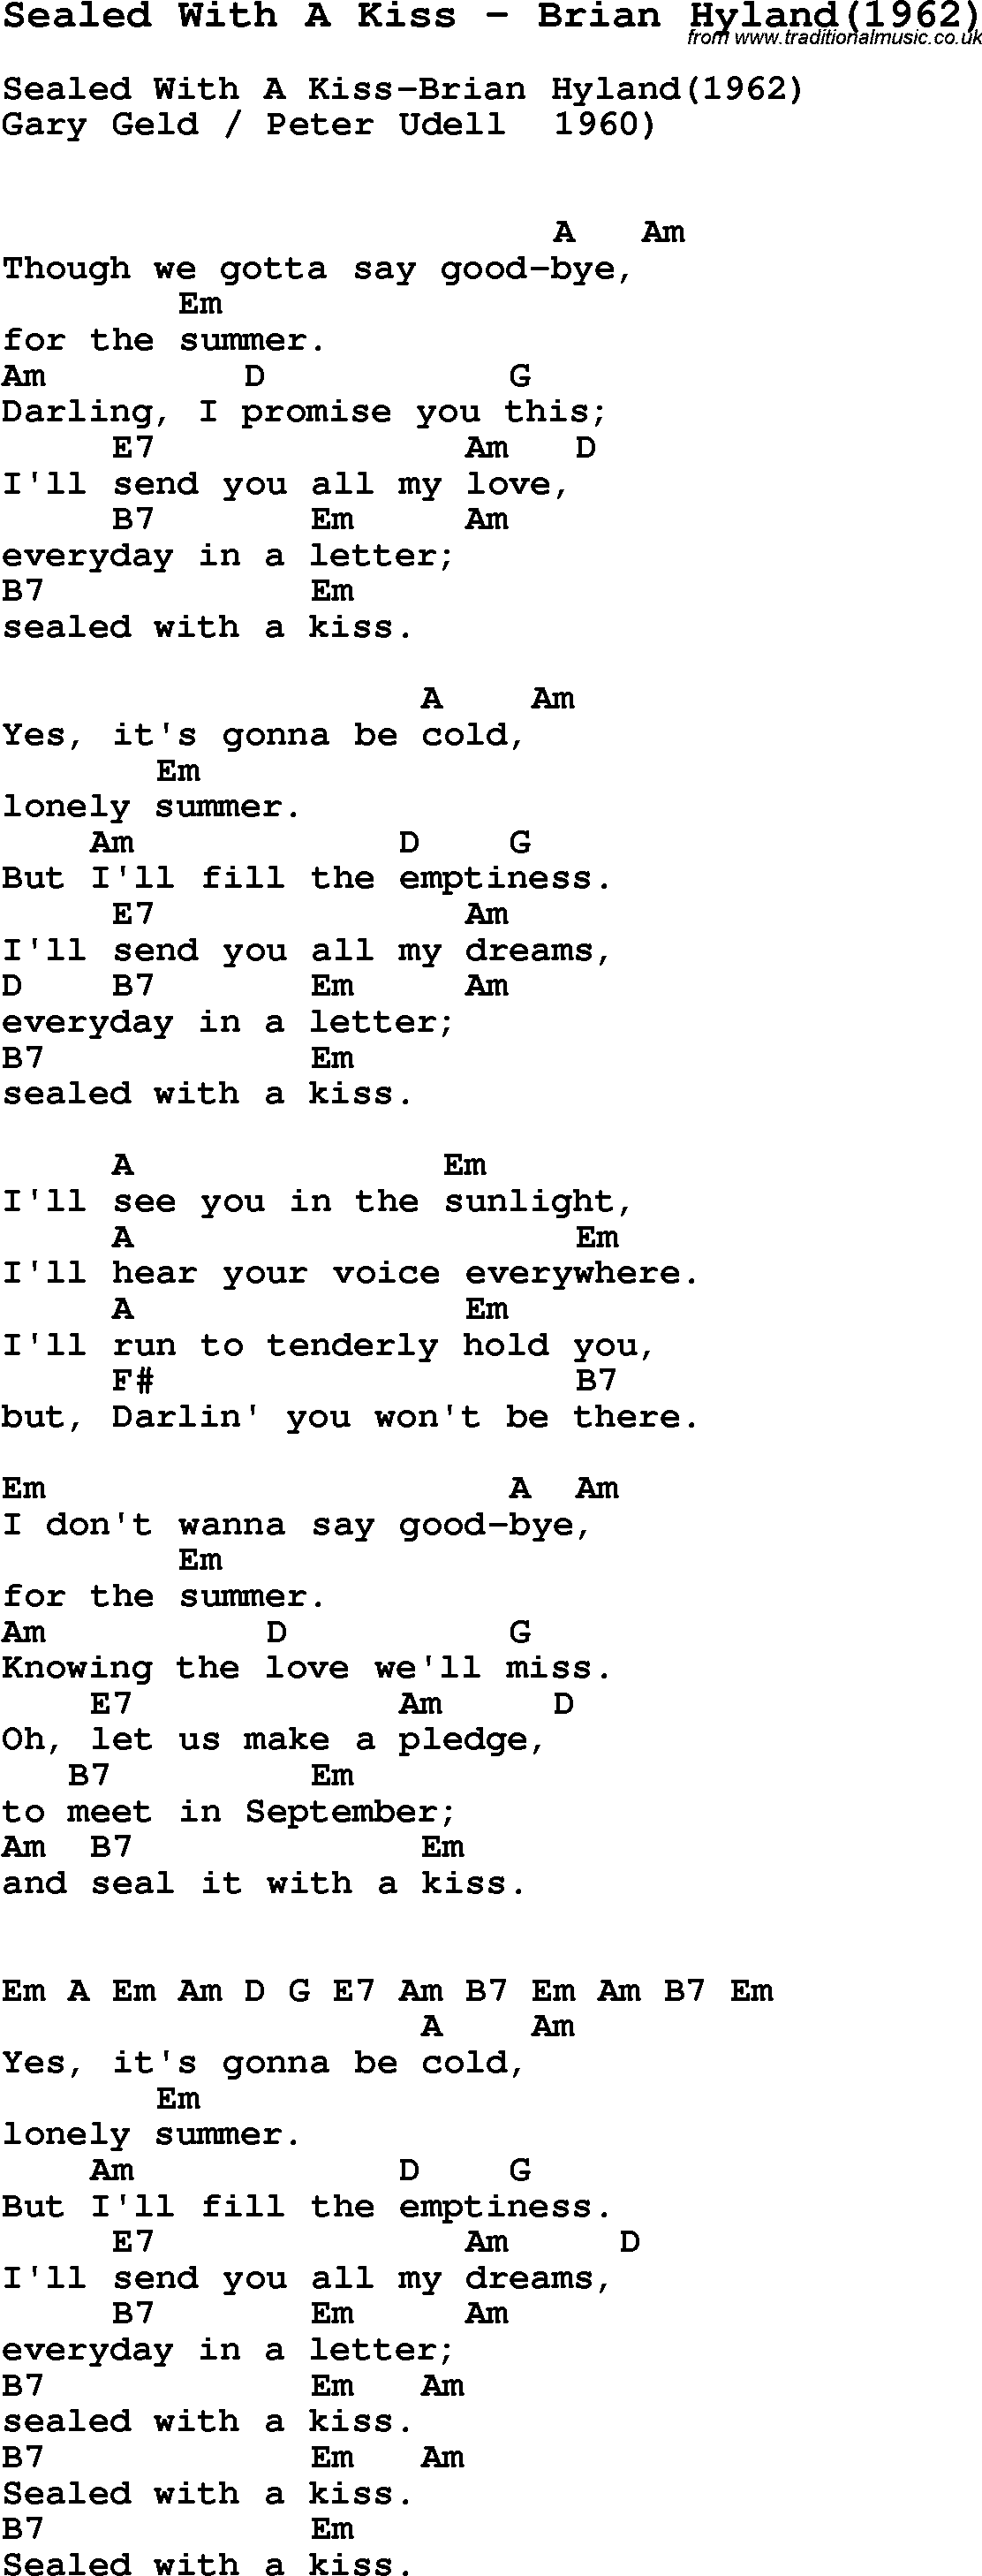 Song sealed with a kiss by brian hyland1962 with lyrics for song sealed with a kiss by brian song lyric for vocal performance plus accompaniment chords for ukulele guitar banjo etc hexwebz Choice Image